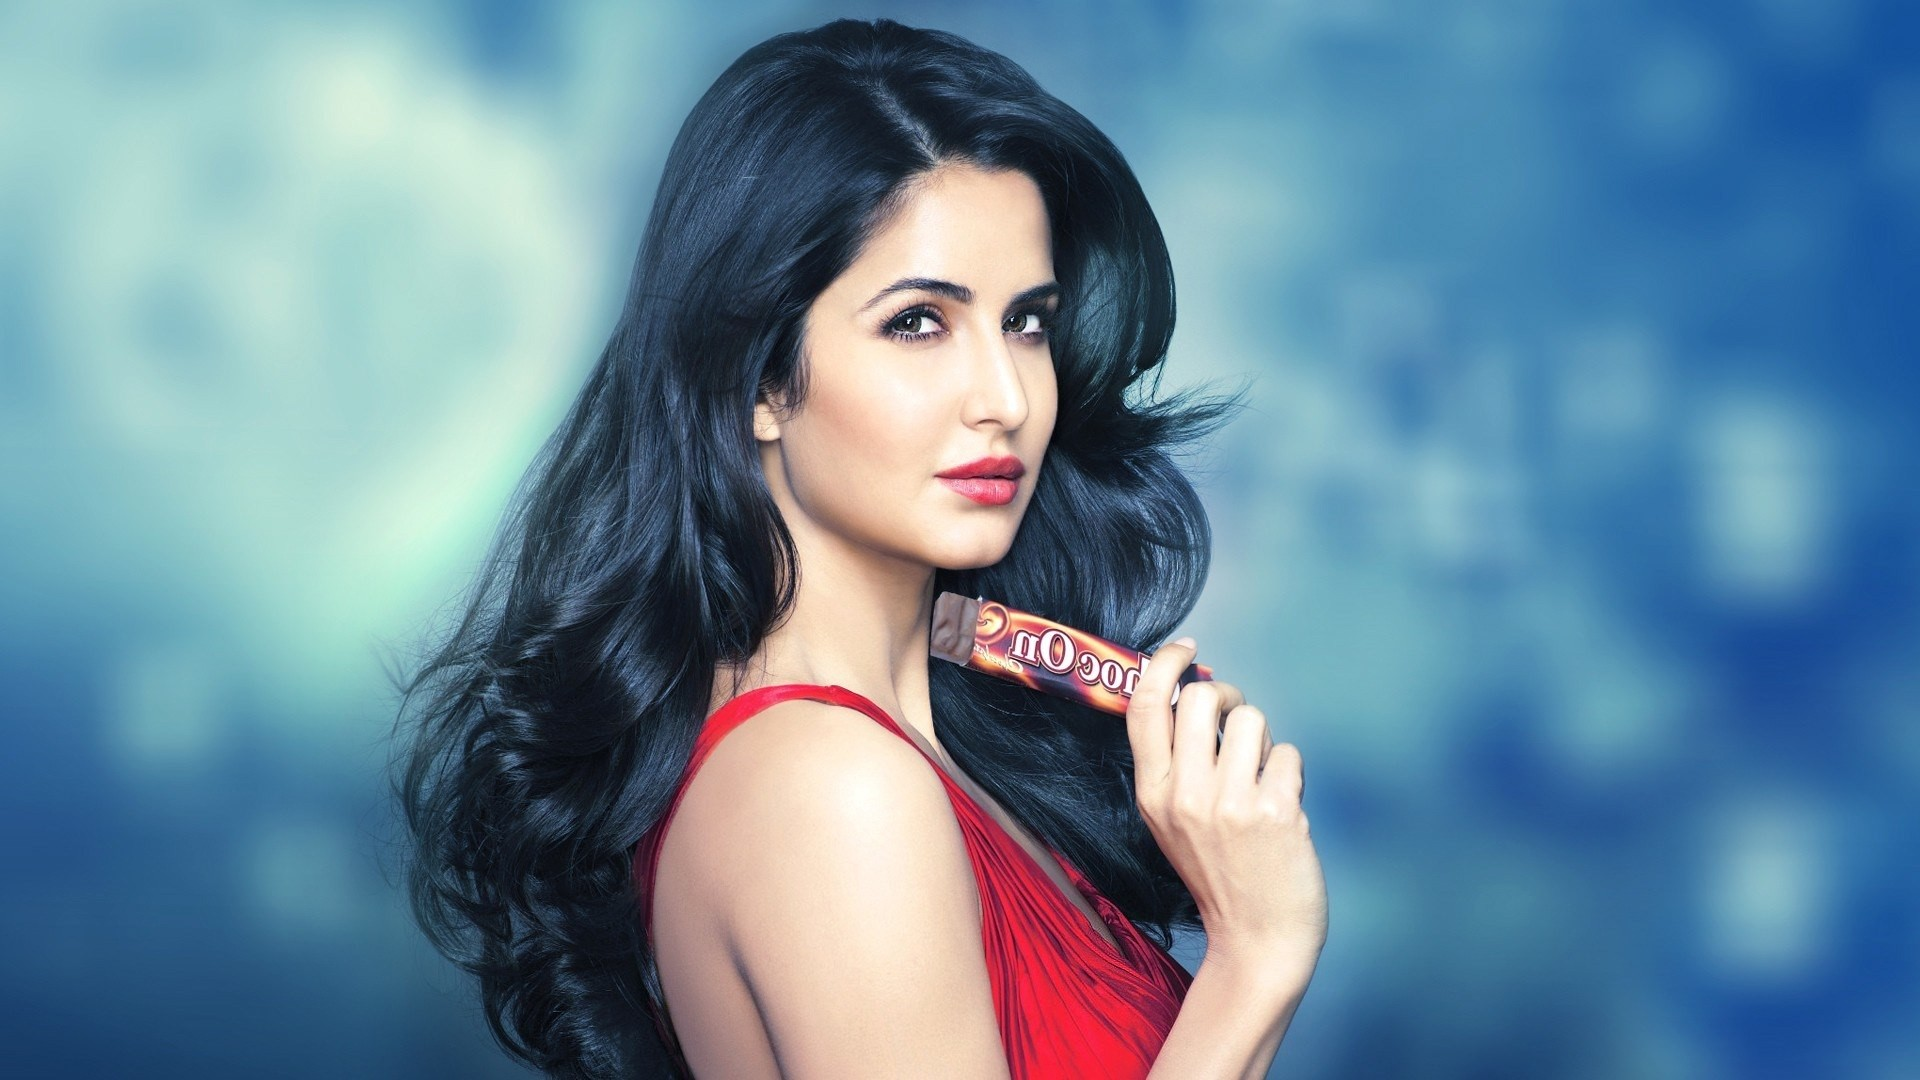 Katrina Kaif Wallpaper Hd 77 Images